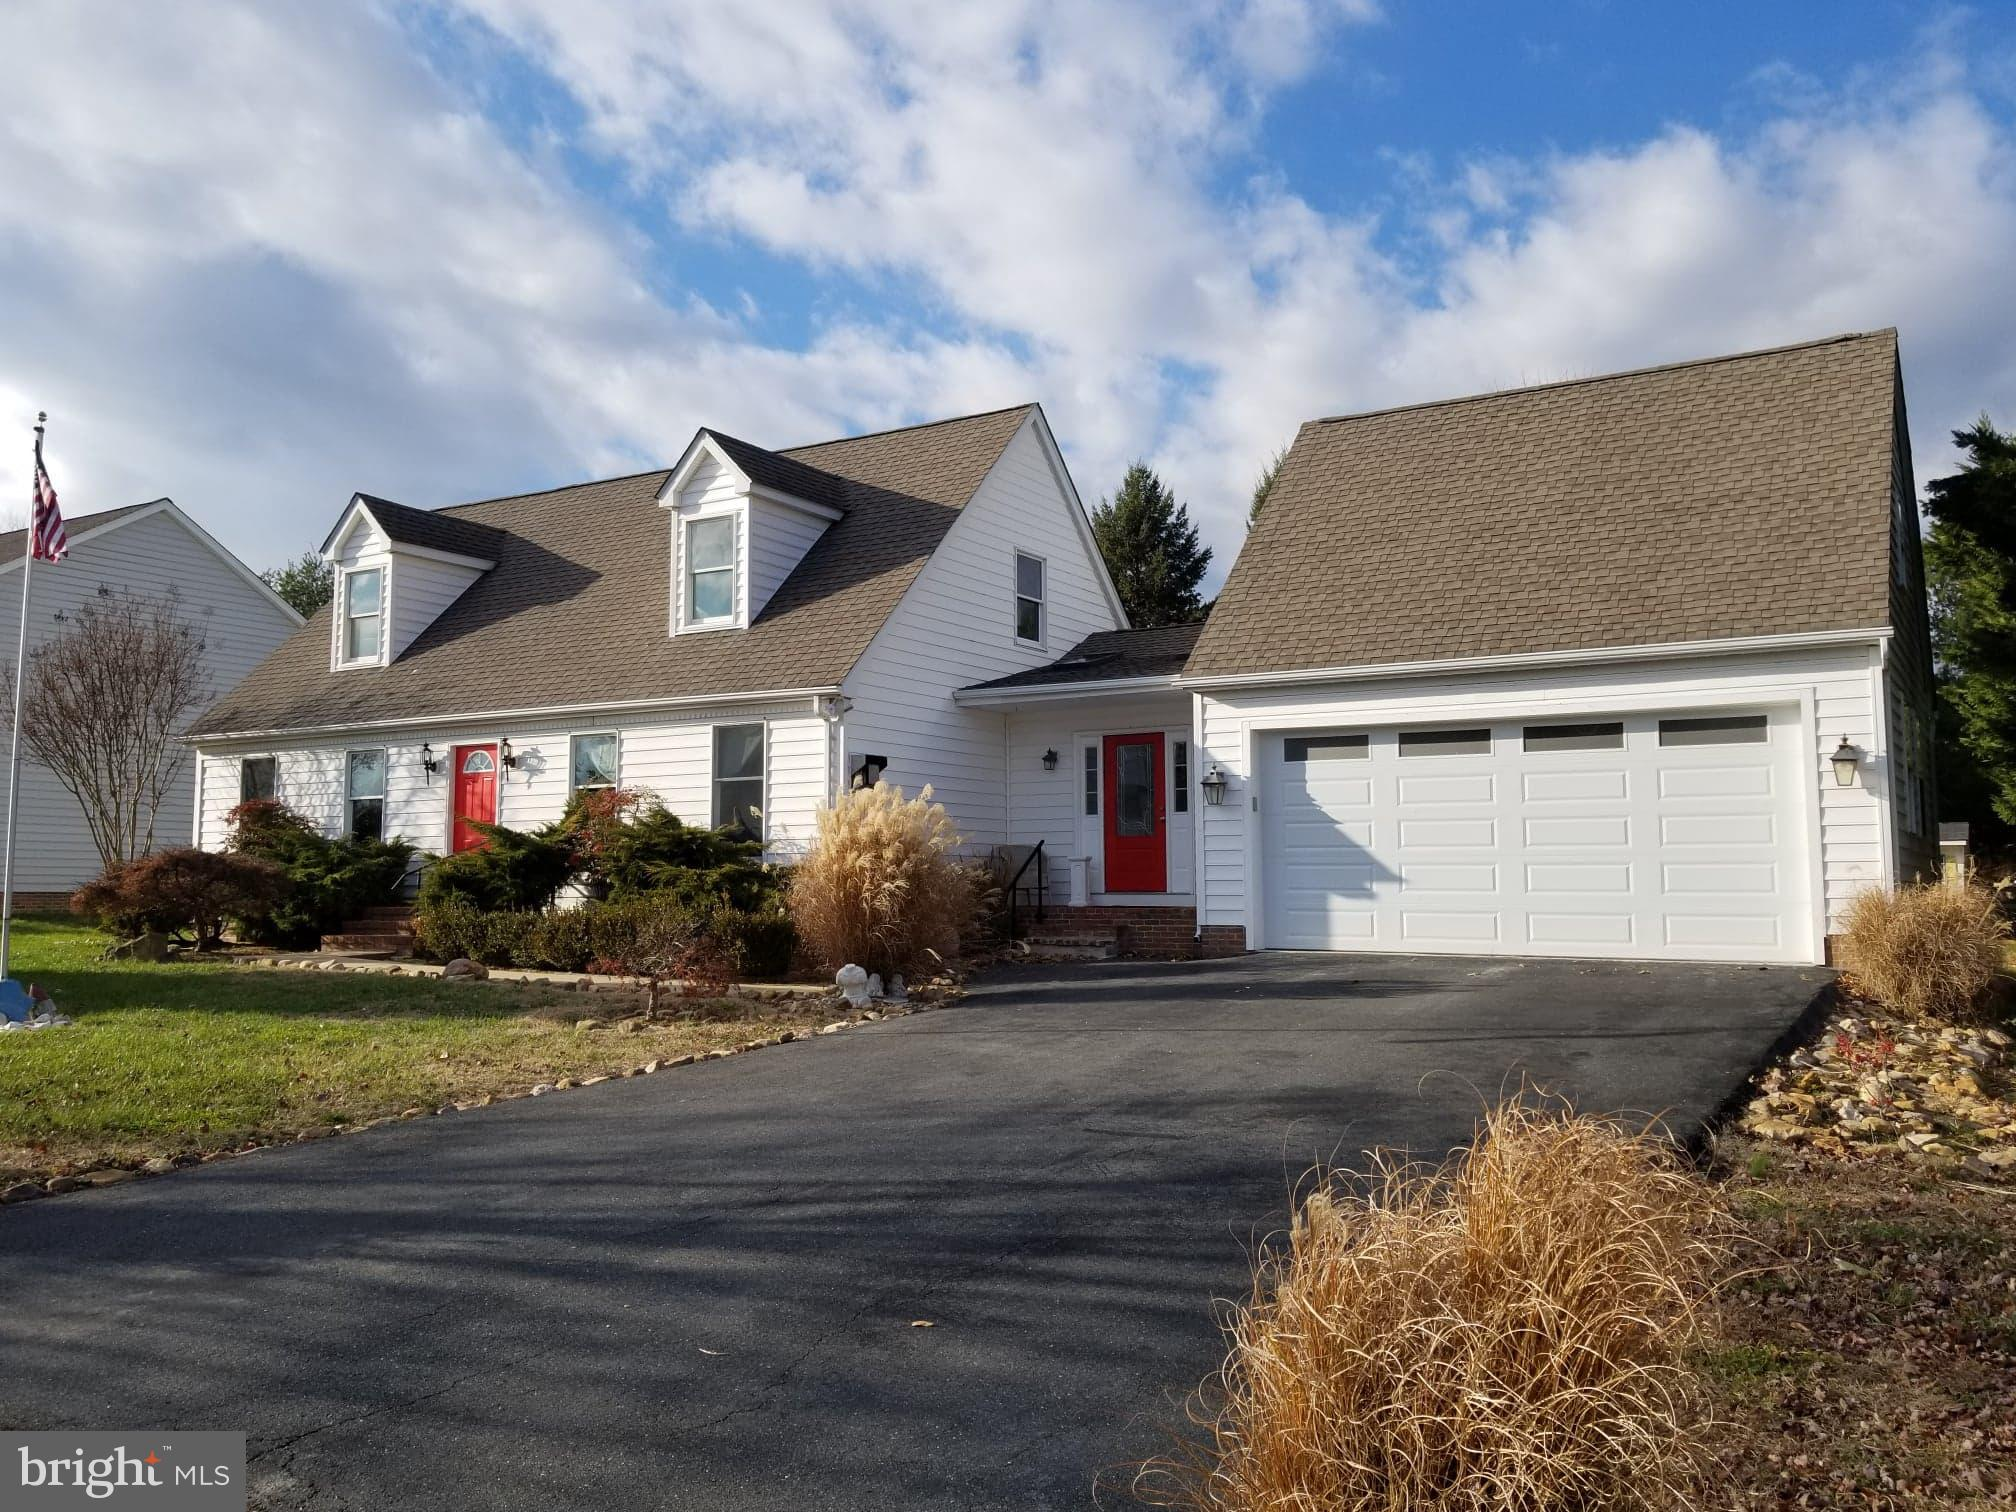 This nice 4BR, 2.5 Bath Cape Cod is nicely positioned on the back row of homes in Wetherbee II.  Wit